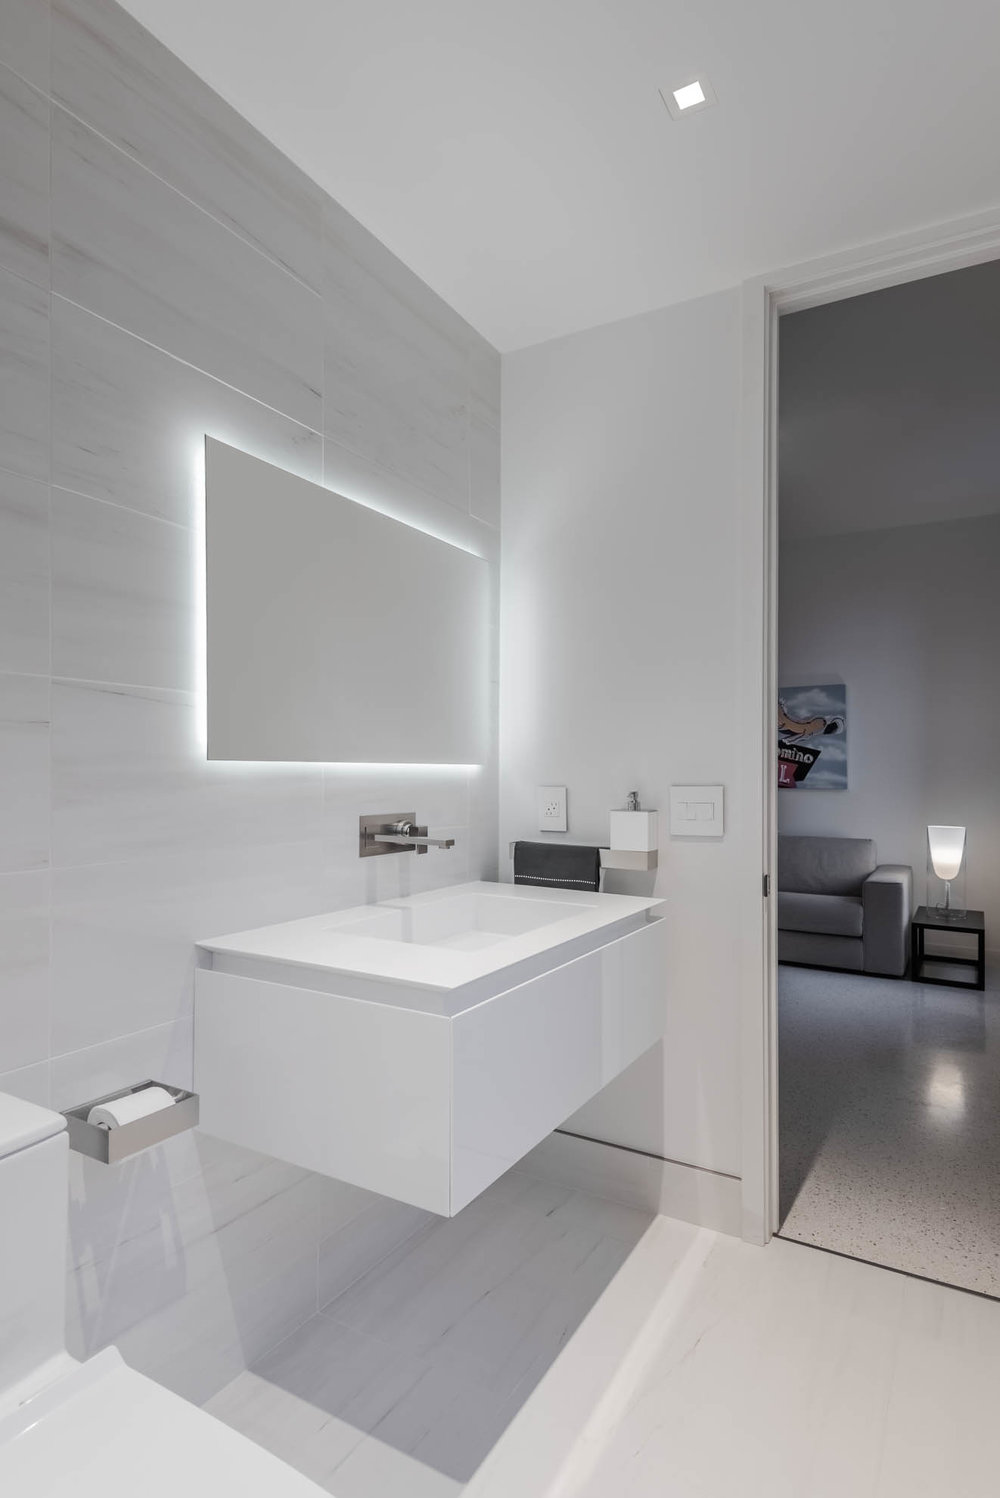 Rifra bathroom cabinetry & accessories, Gessi fixtures